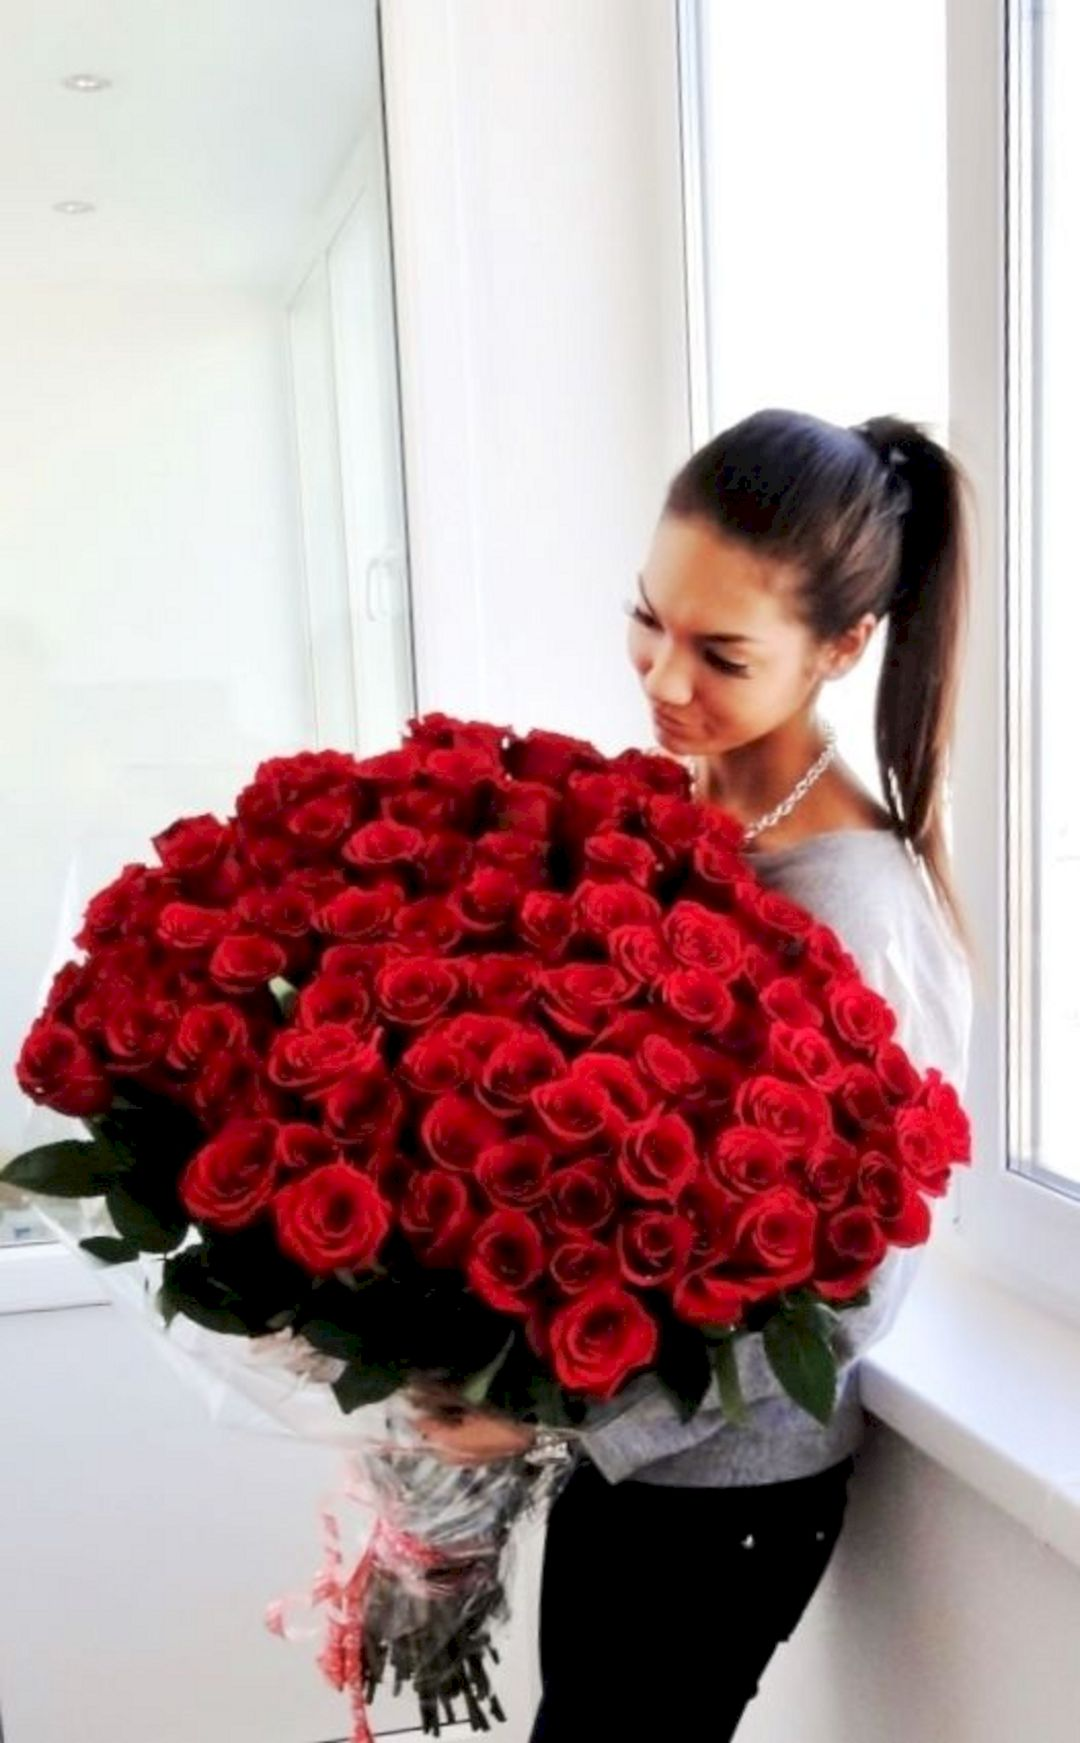 Huge Bouquets Wallpapers High Quality Download Free